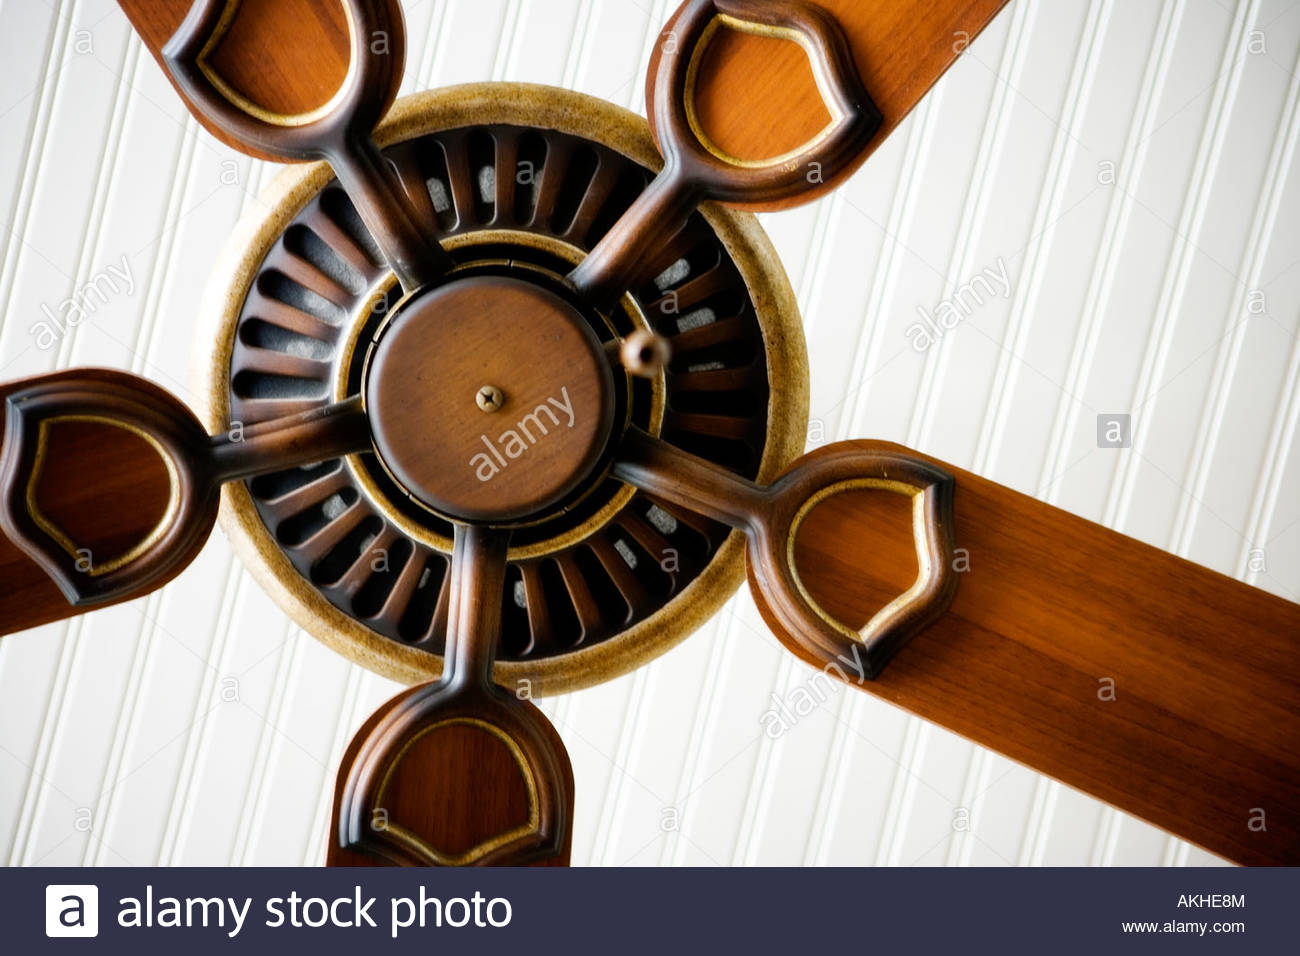 Detail of ceiling fan. Stock Photo